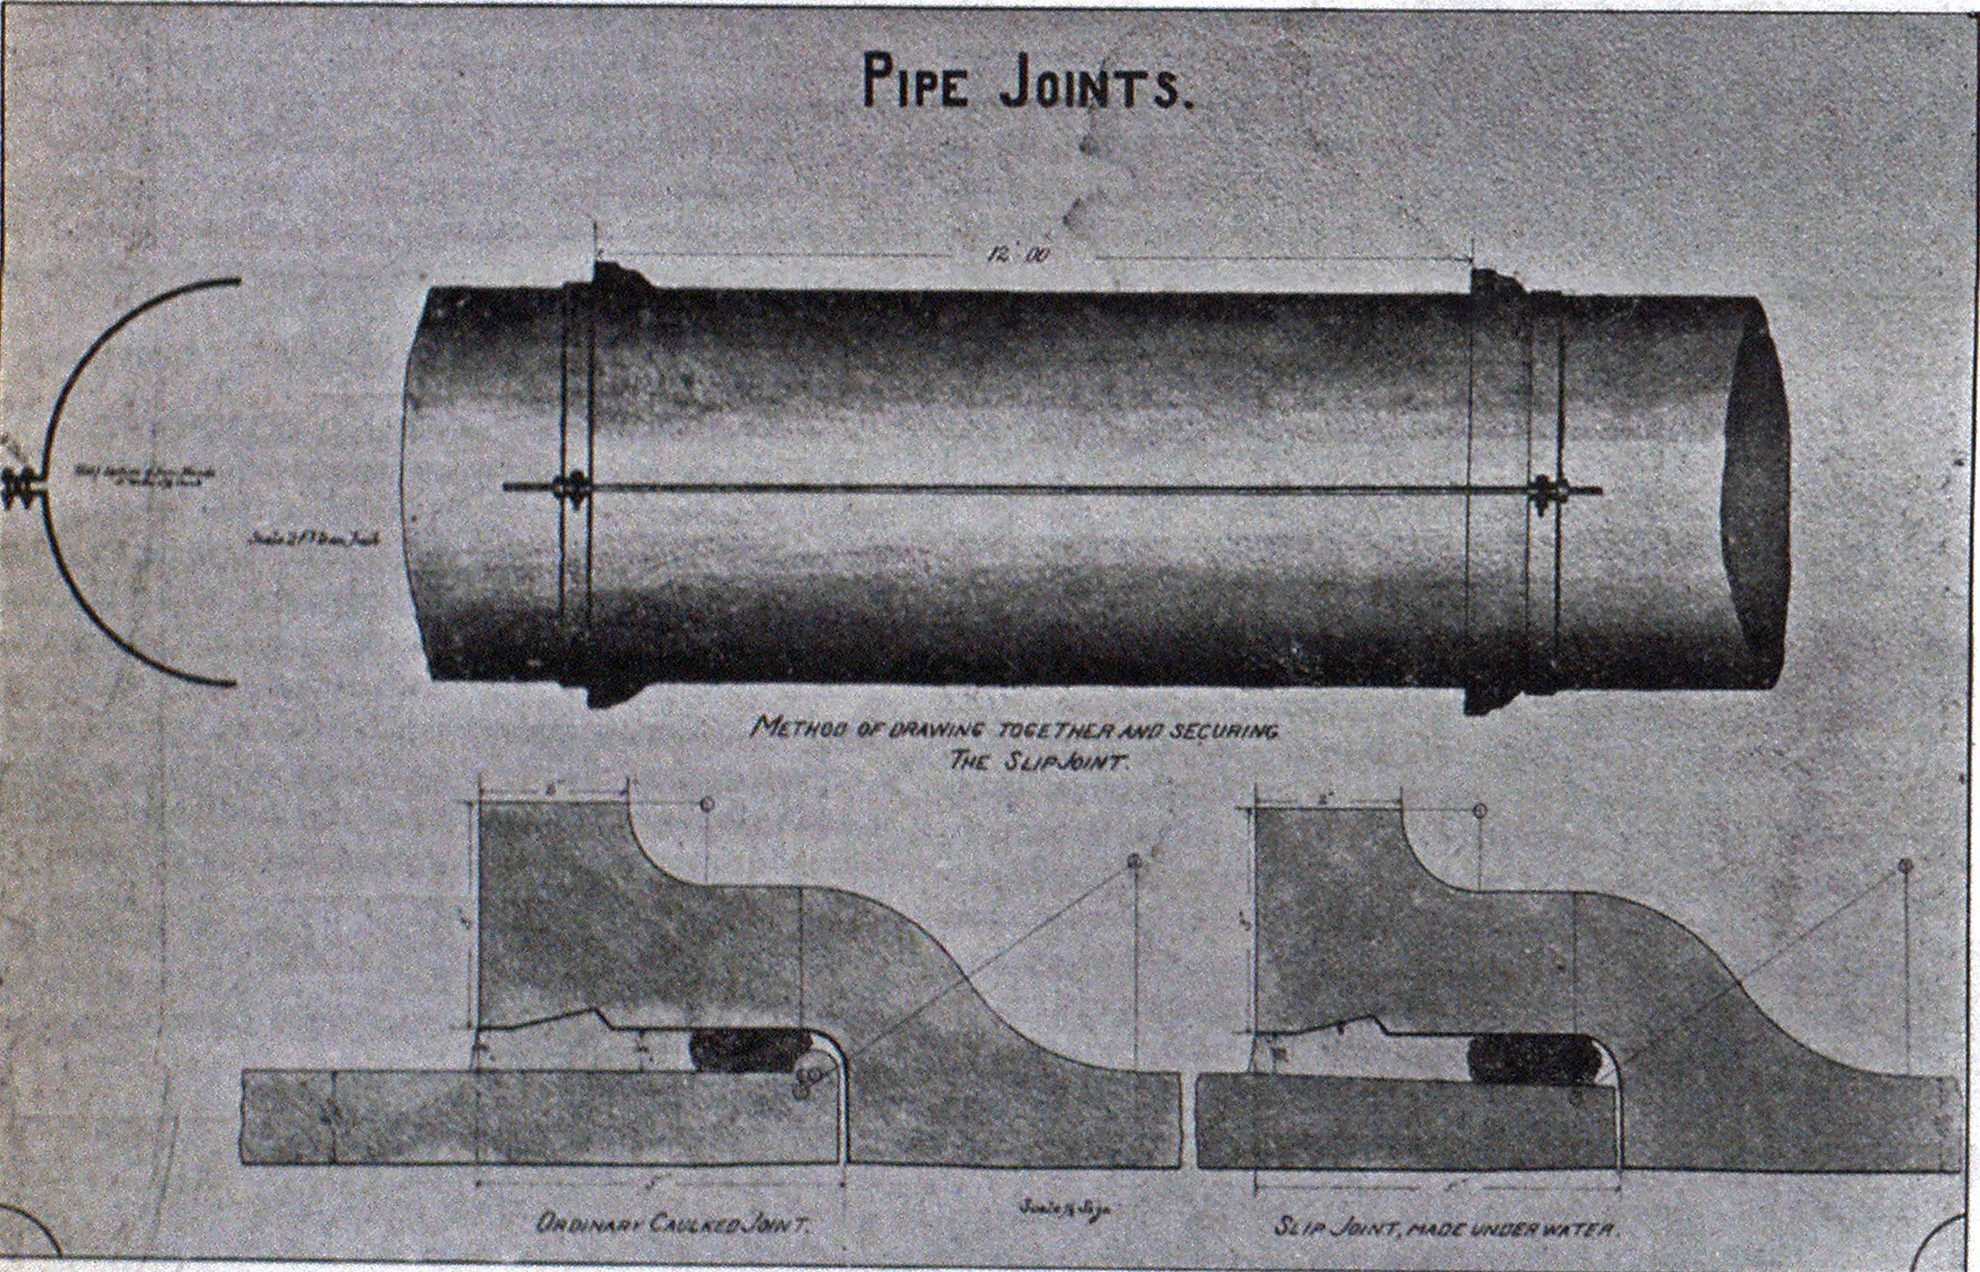 METHOD OF MAKING JOINTS UNDER WATER, ERIE, PA.